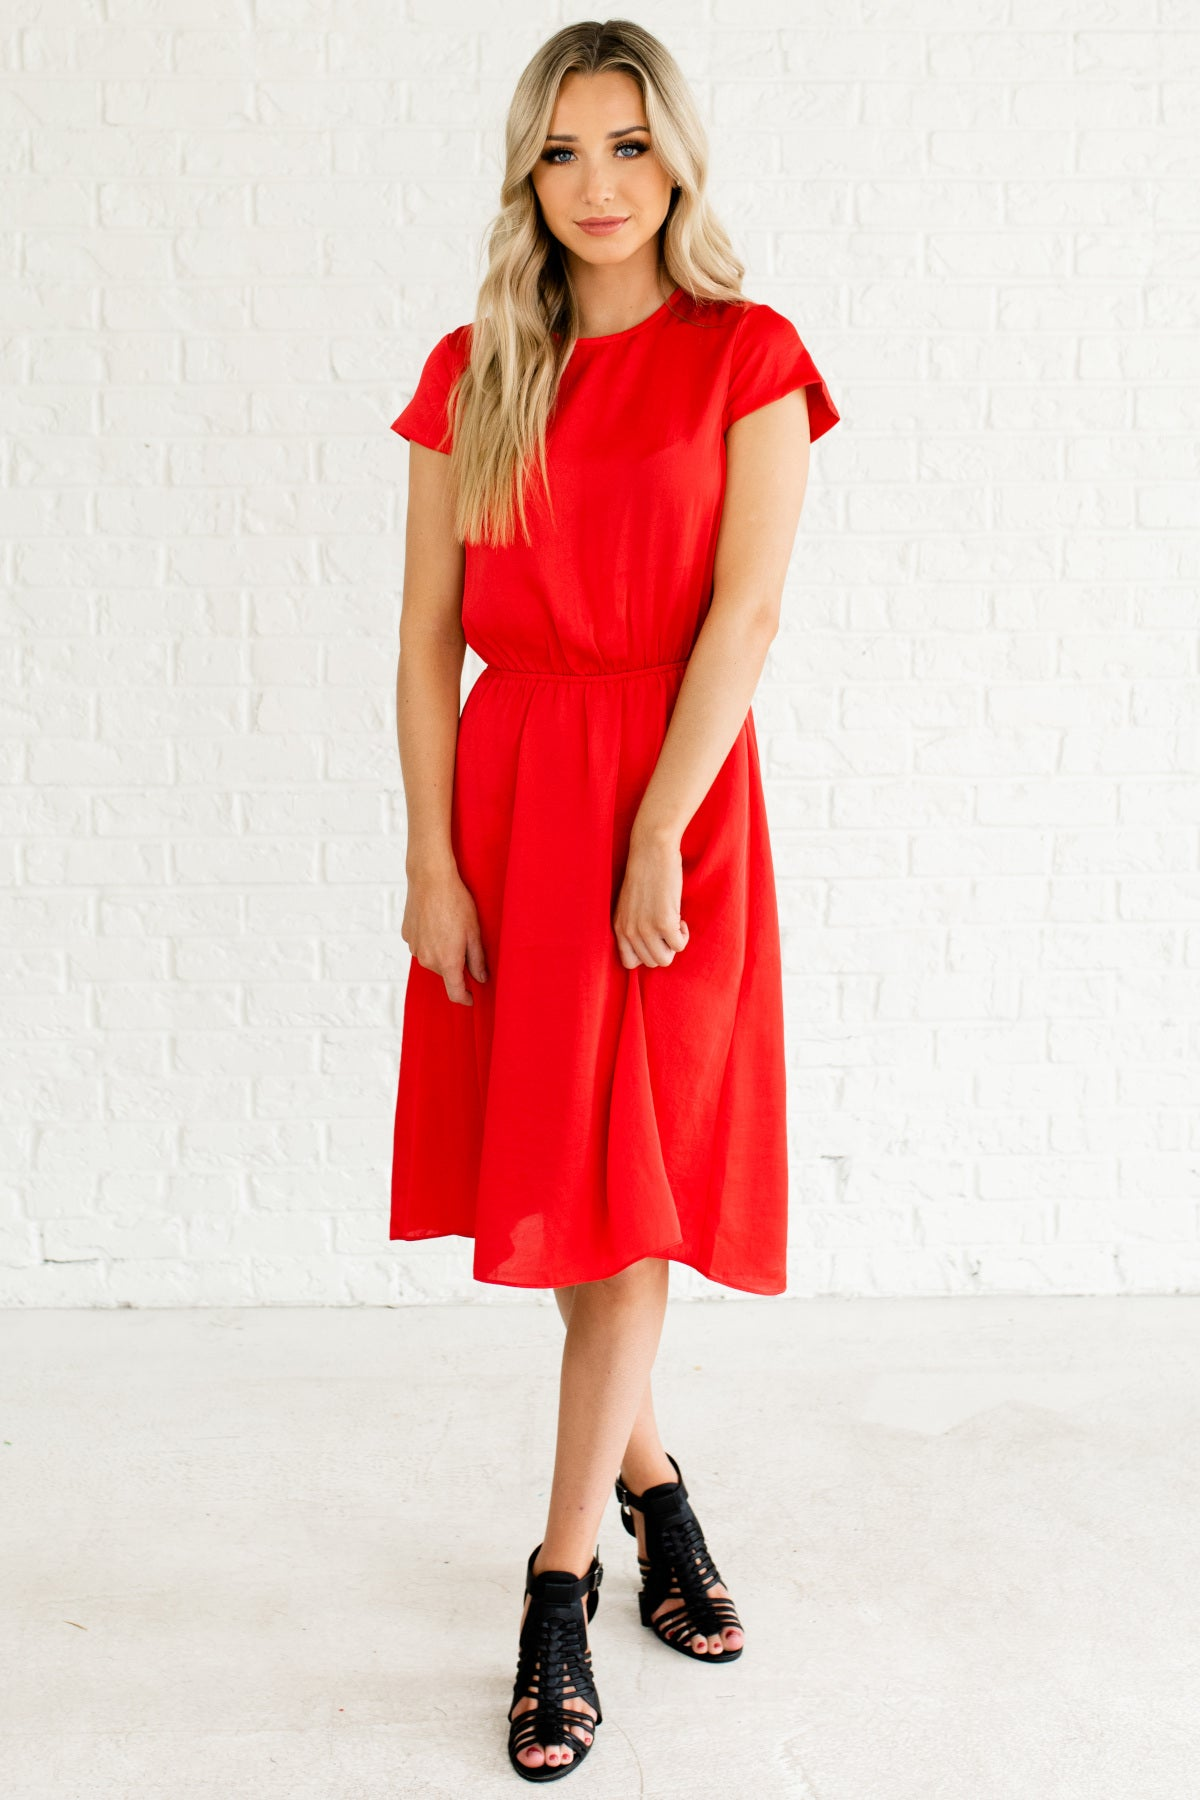 cd6fedd1a756 Red Satin Cap Sleeve Knee Length Affordable Online Boutique Dresses for  Women